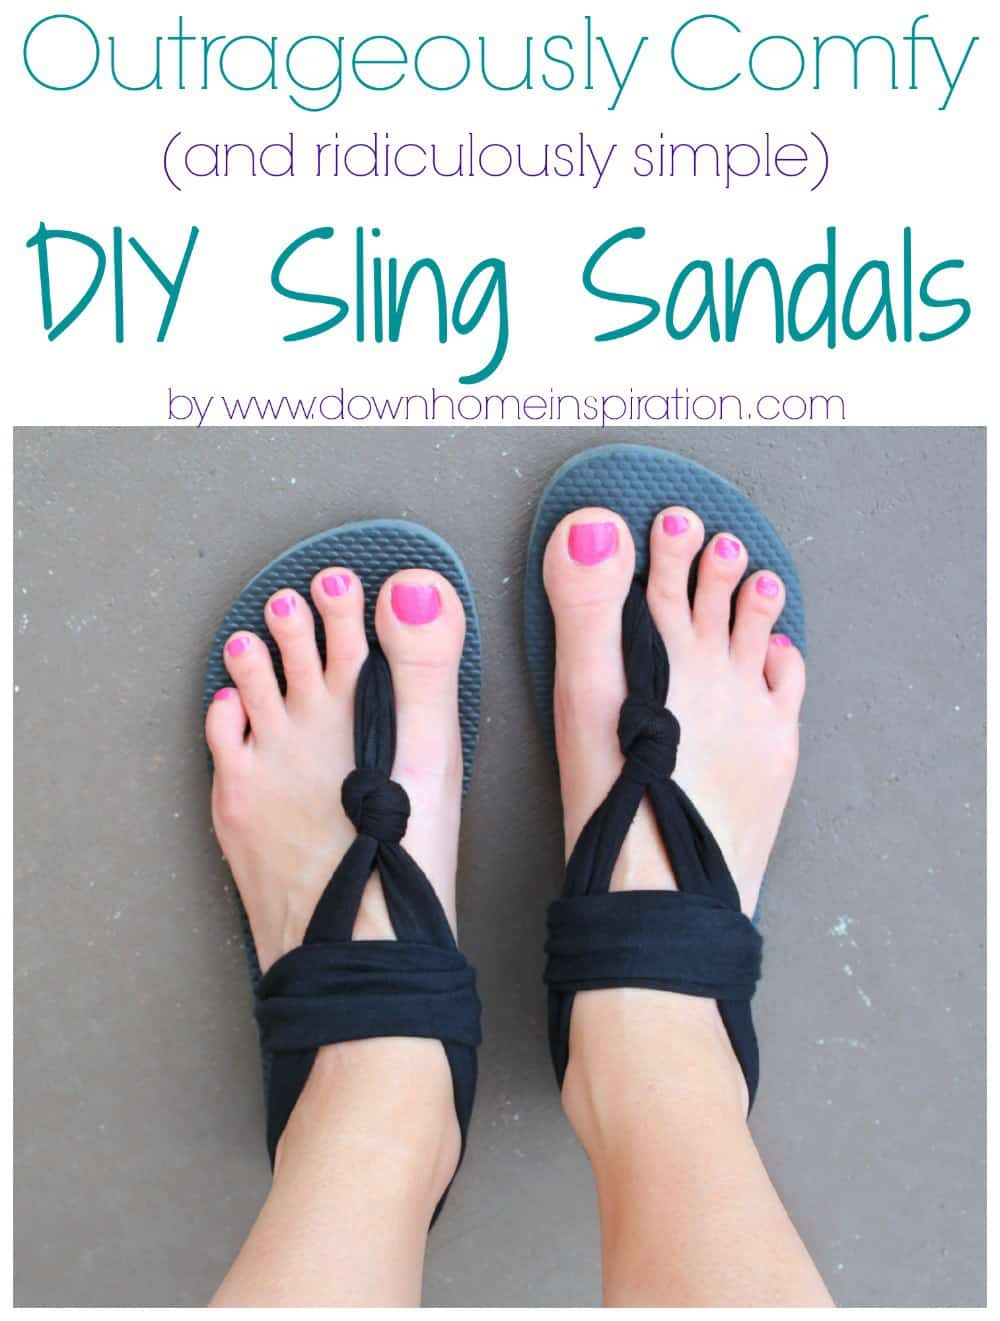 Super comfy DIY sling sandals